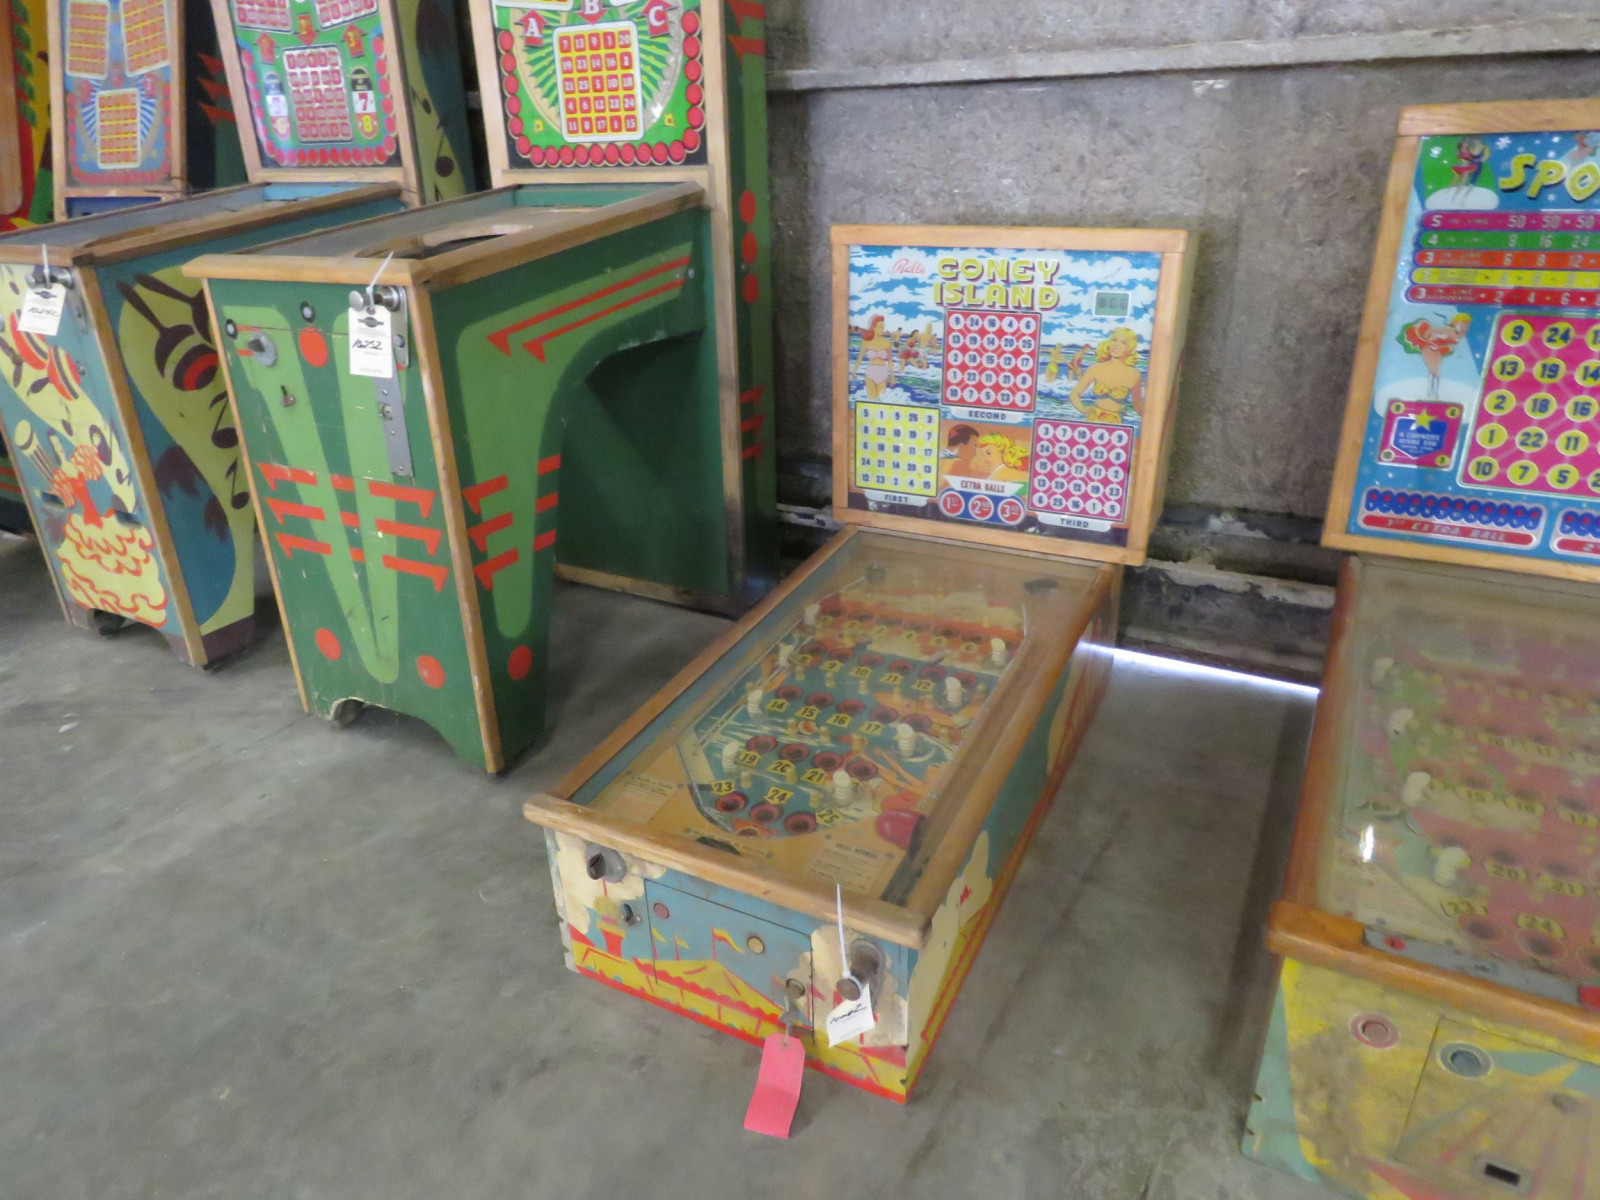 Vintage Bally Coney Island Pinball Machine - Image 1